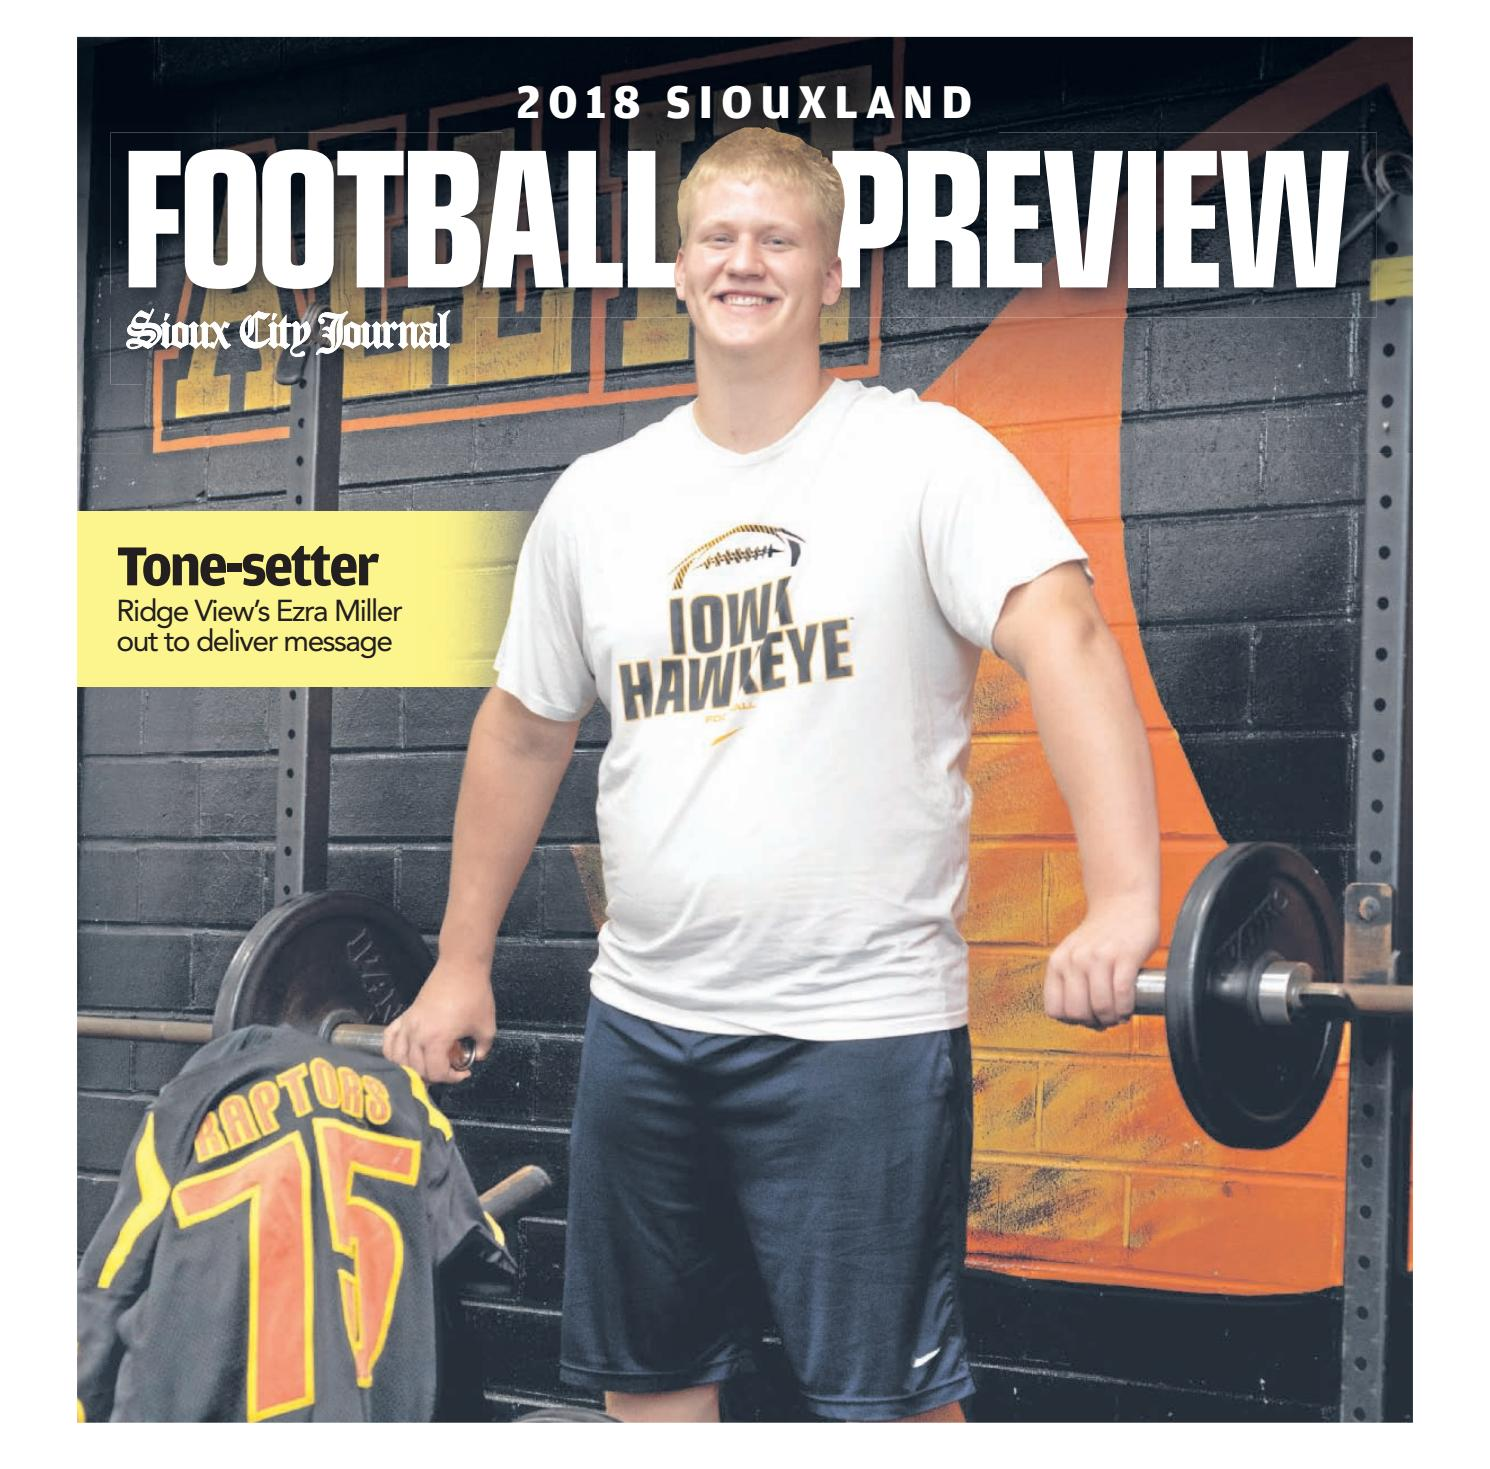 2018 Football Preview by Sioux City Journal - issuu